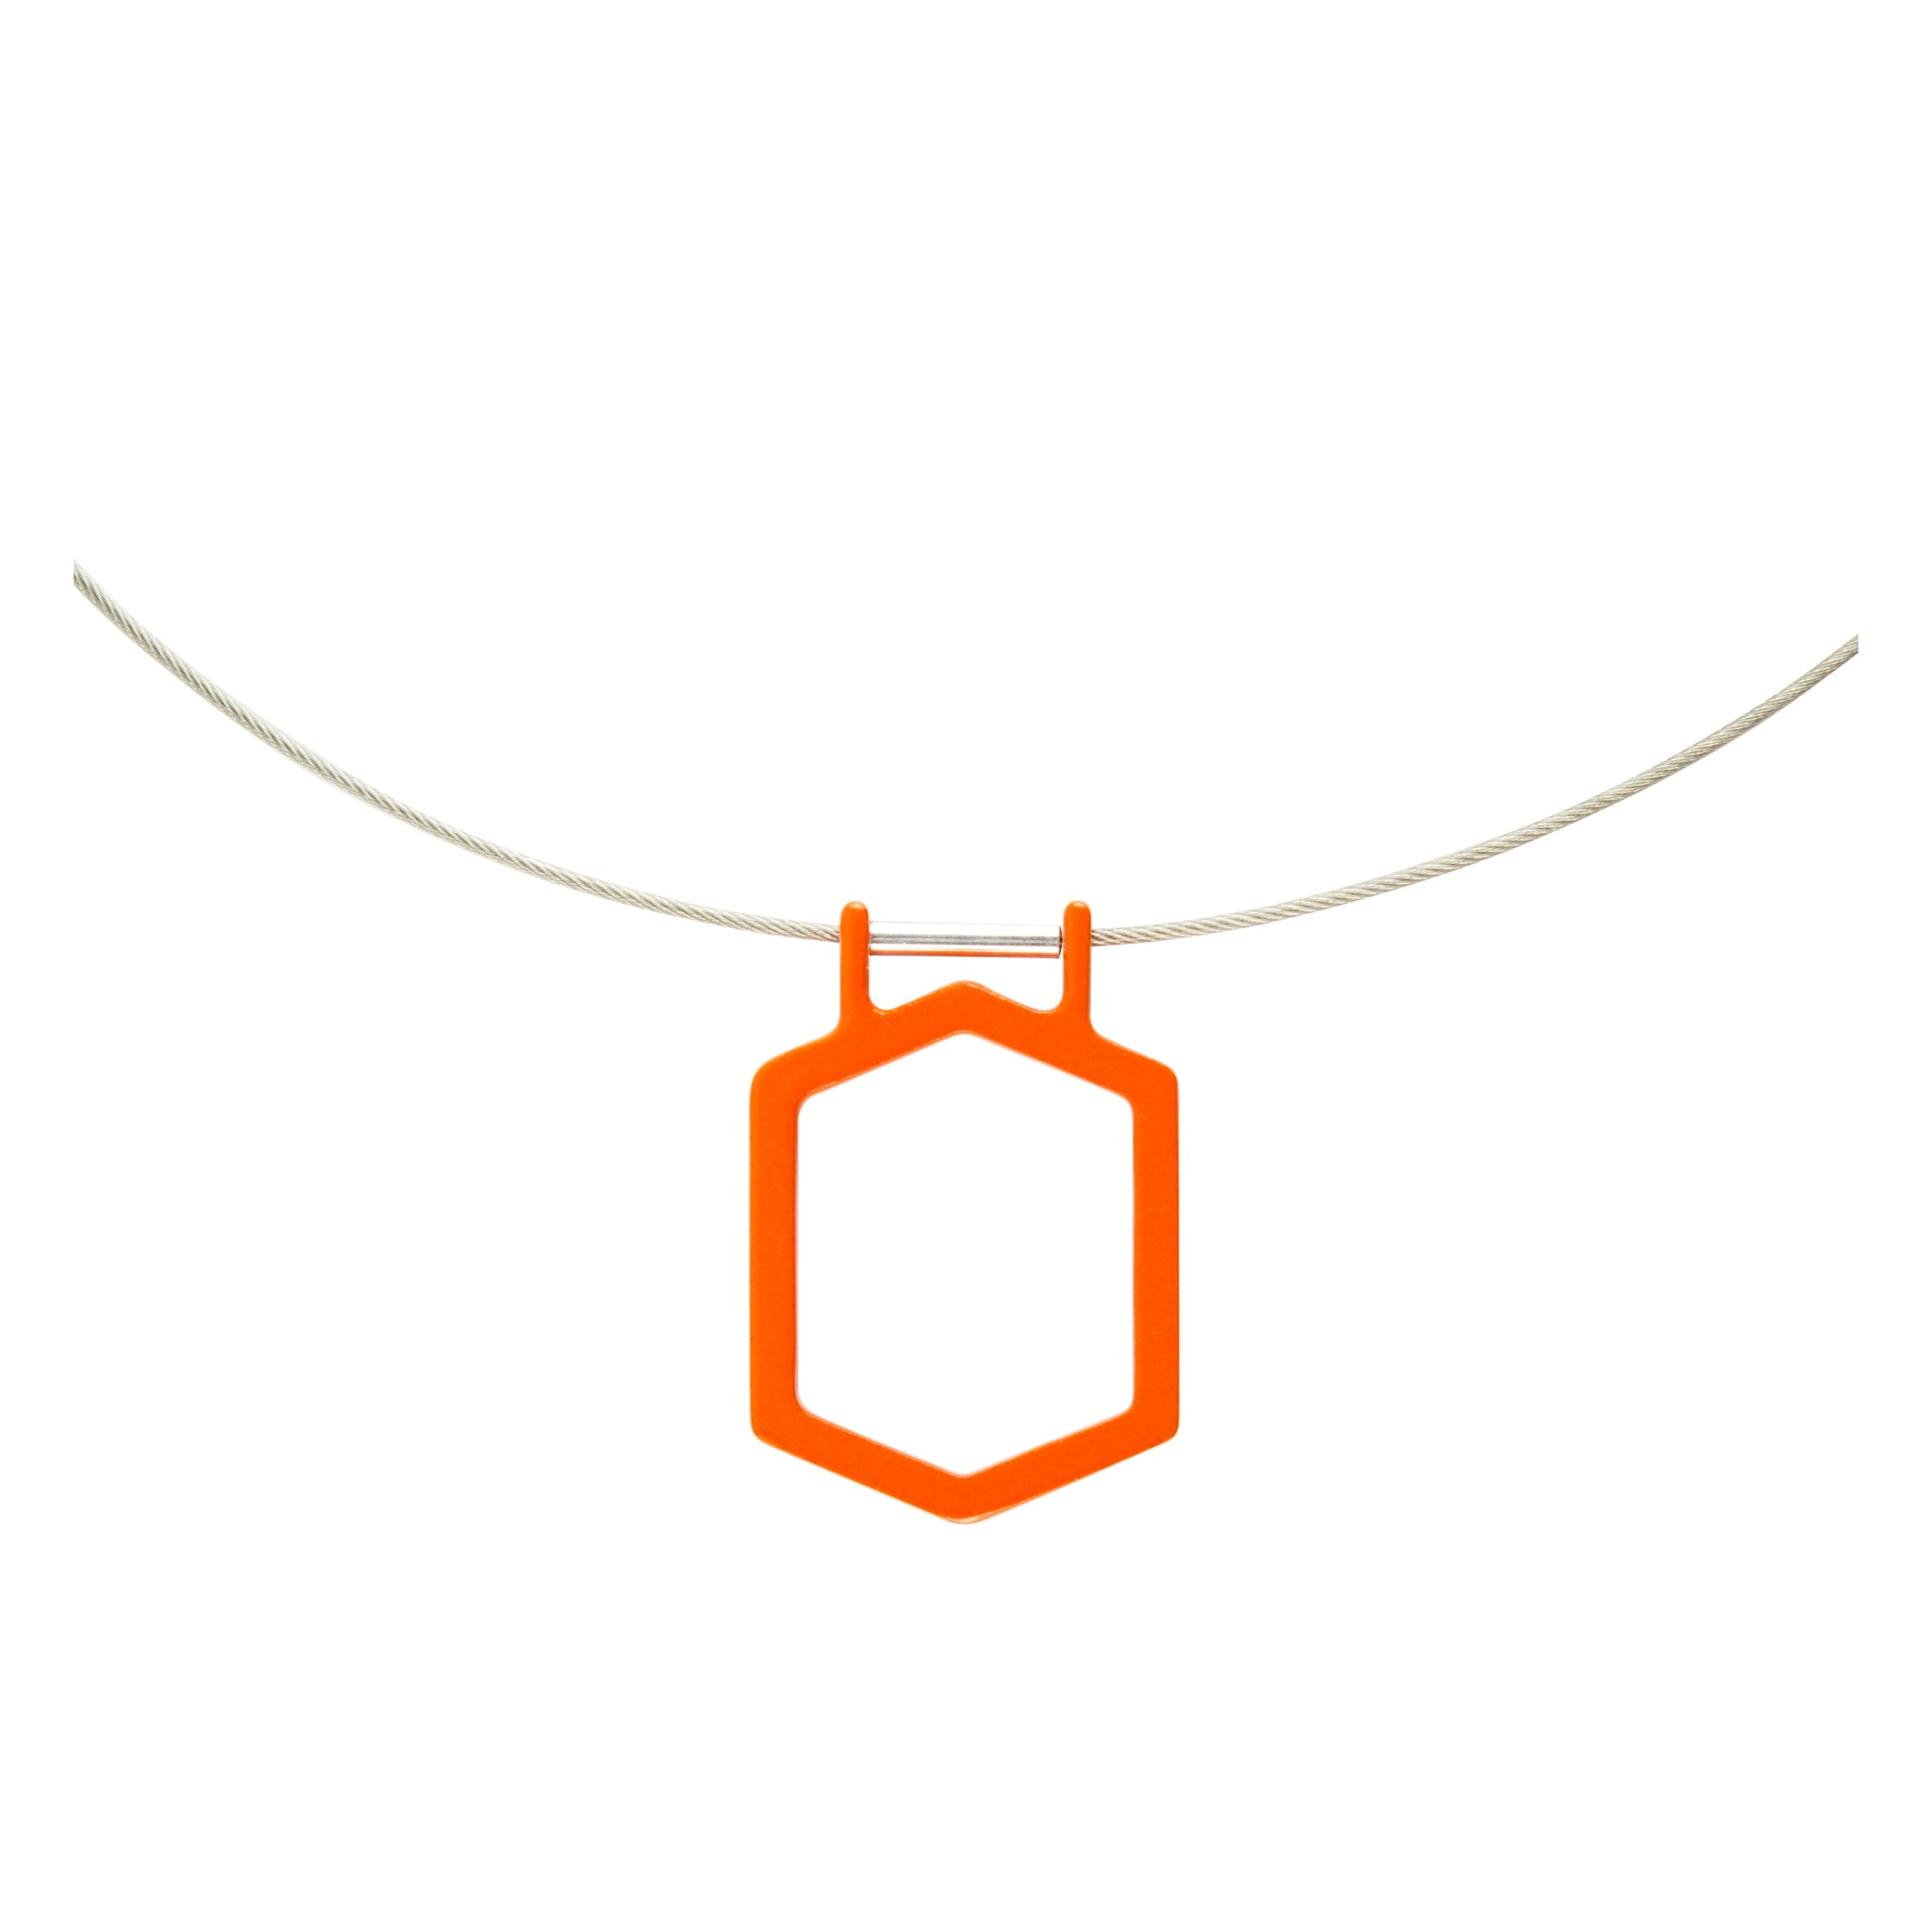 Vibrant_Orange - WITHIN x COMMON GROUND Jewelry Front View